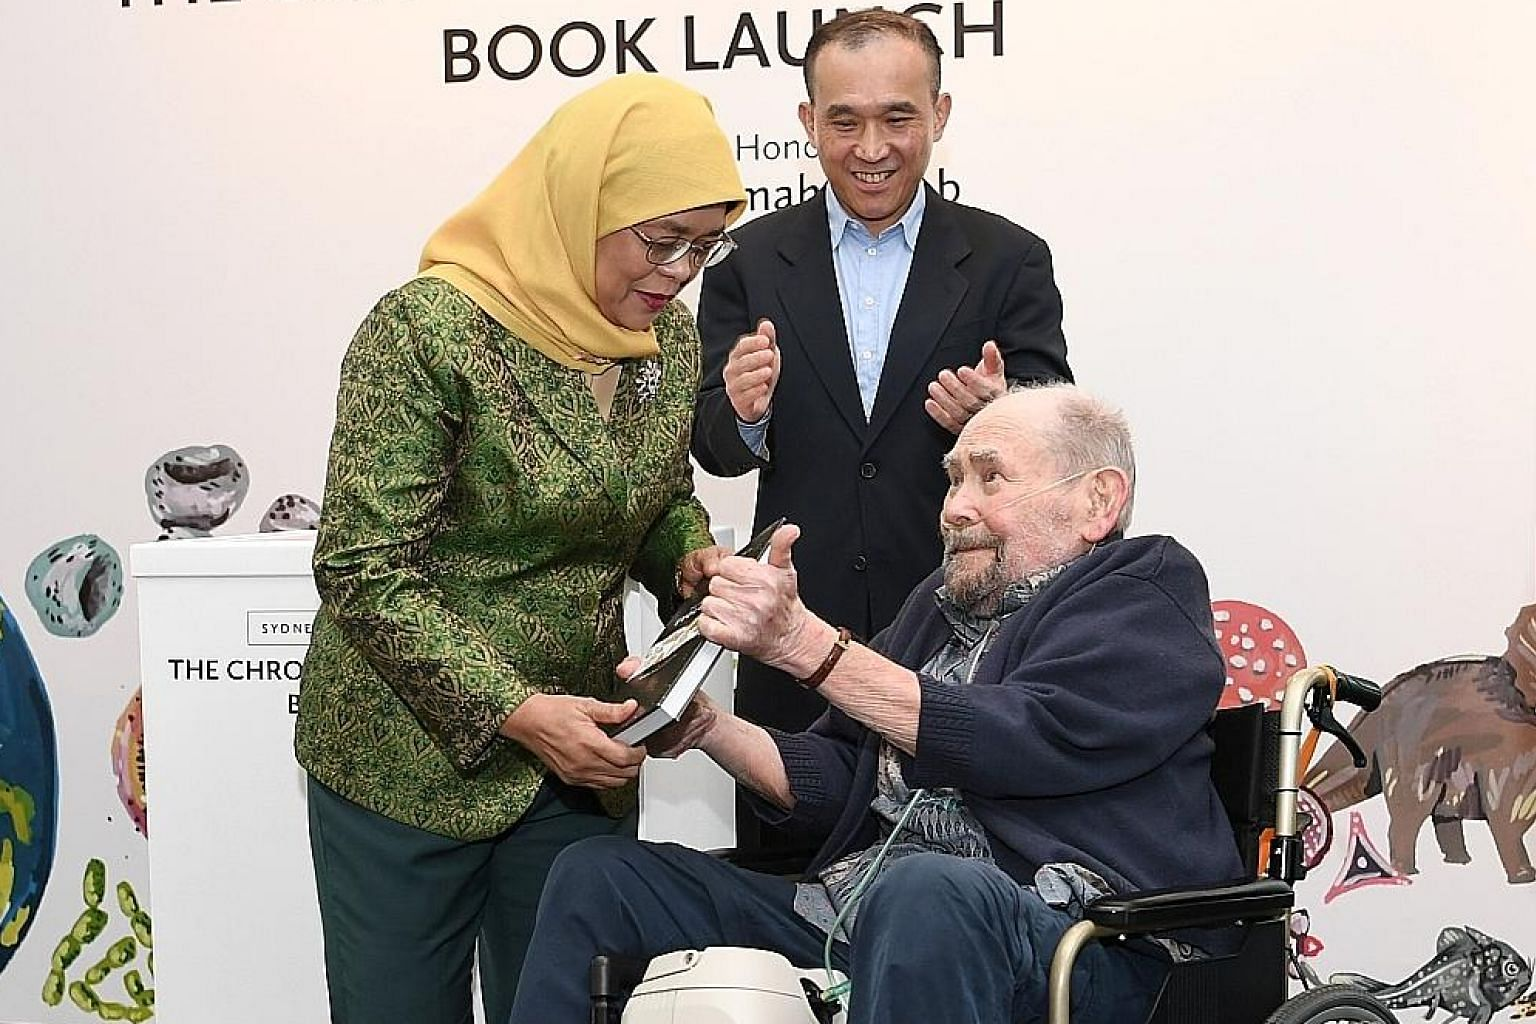 President Halimah Yacob and A*Star chairman Lim Chuan Poh at the book launch of Sydney Brenner's 10-On-10: The Chronicles Of Evolution, the brainchild of Nobel laureate Sydney Brenner.